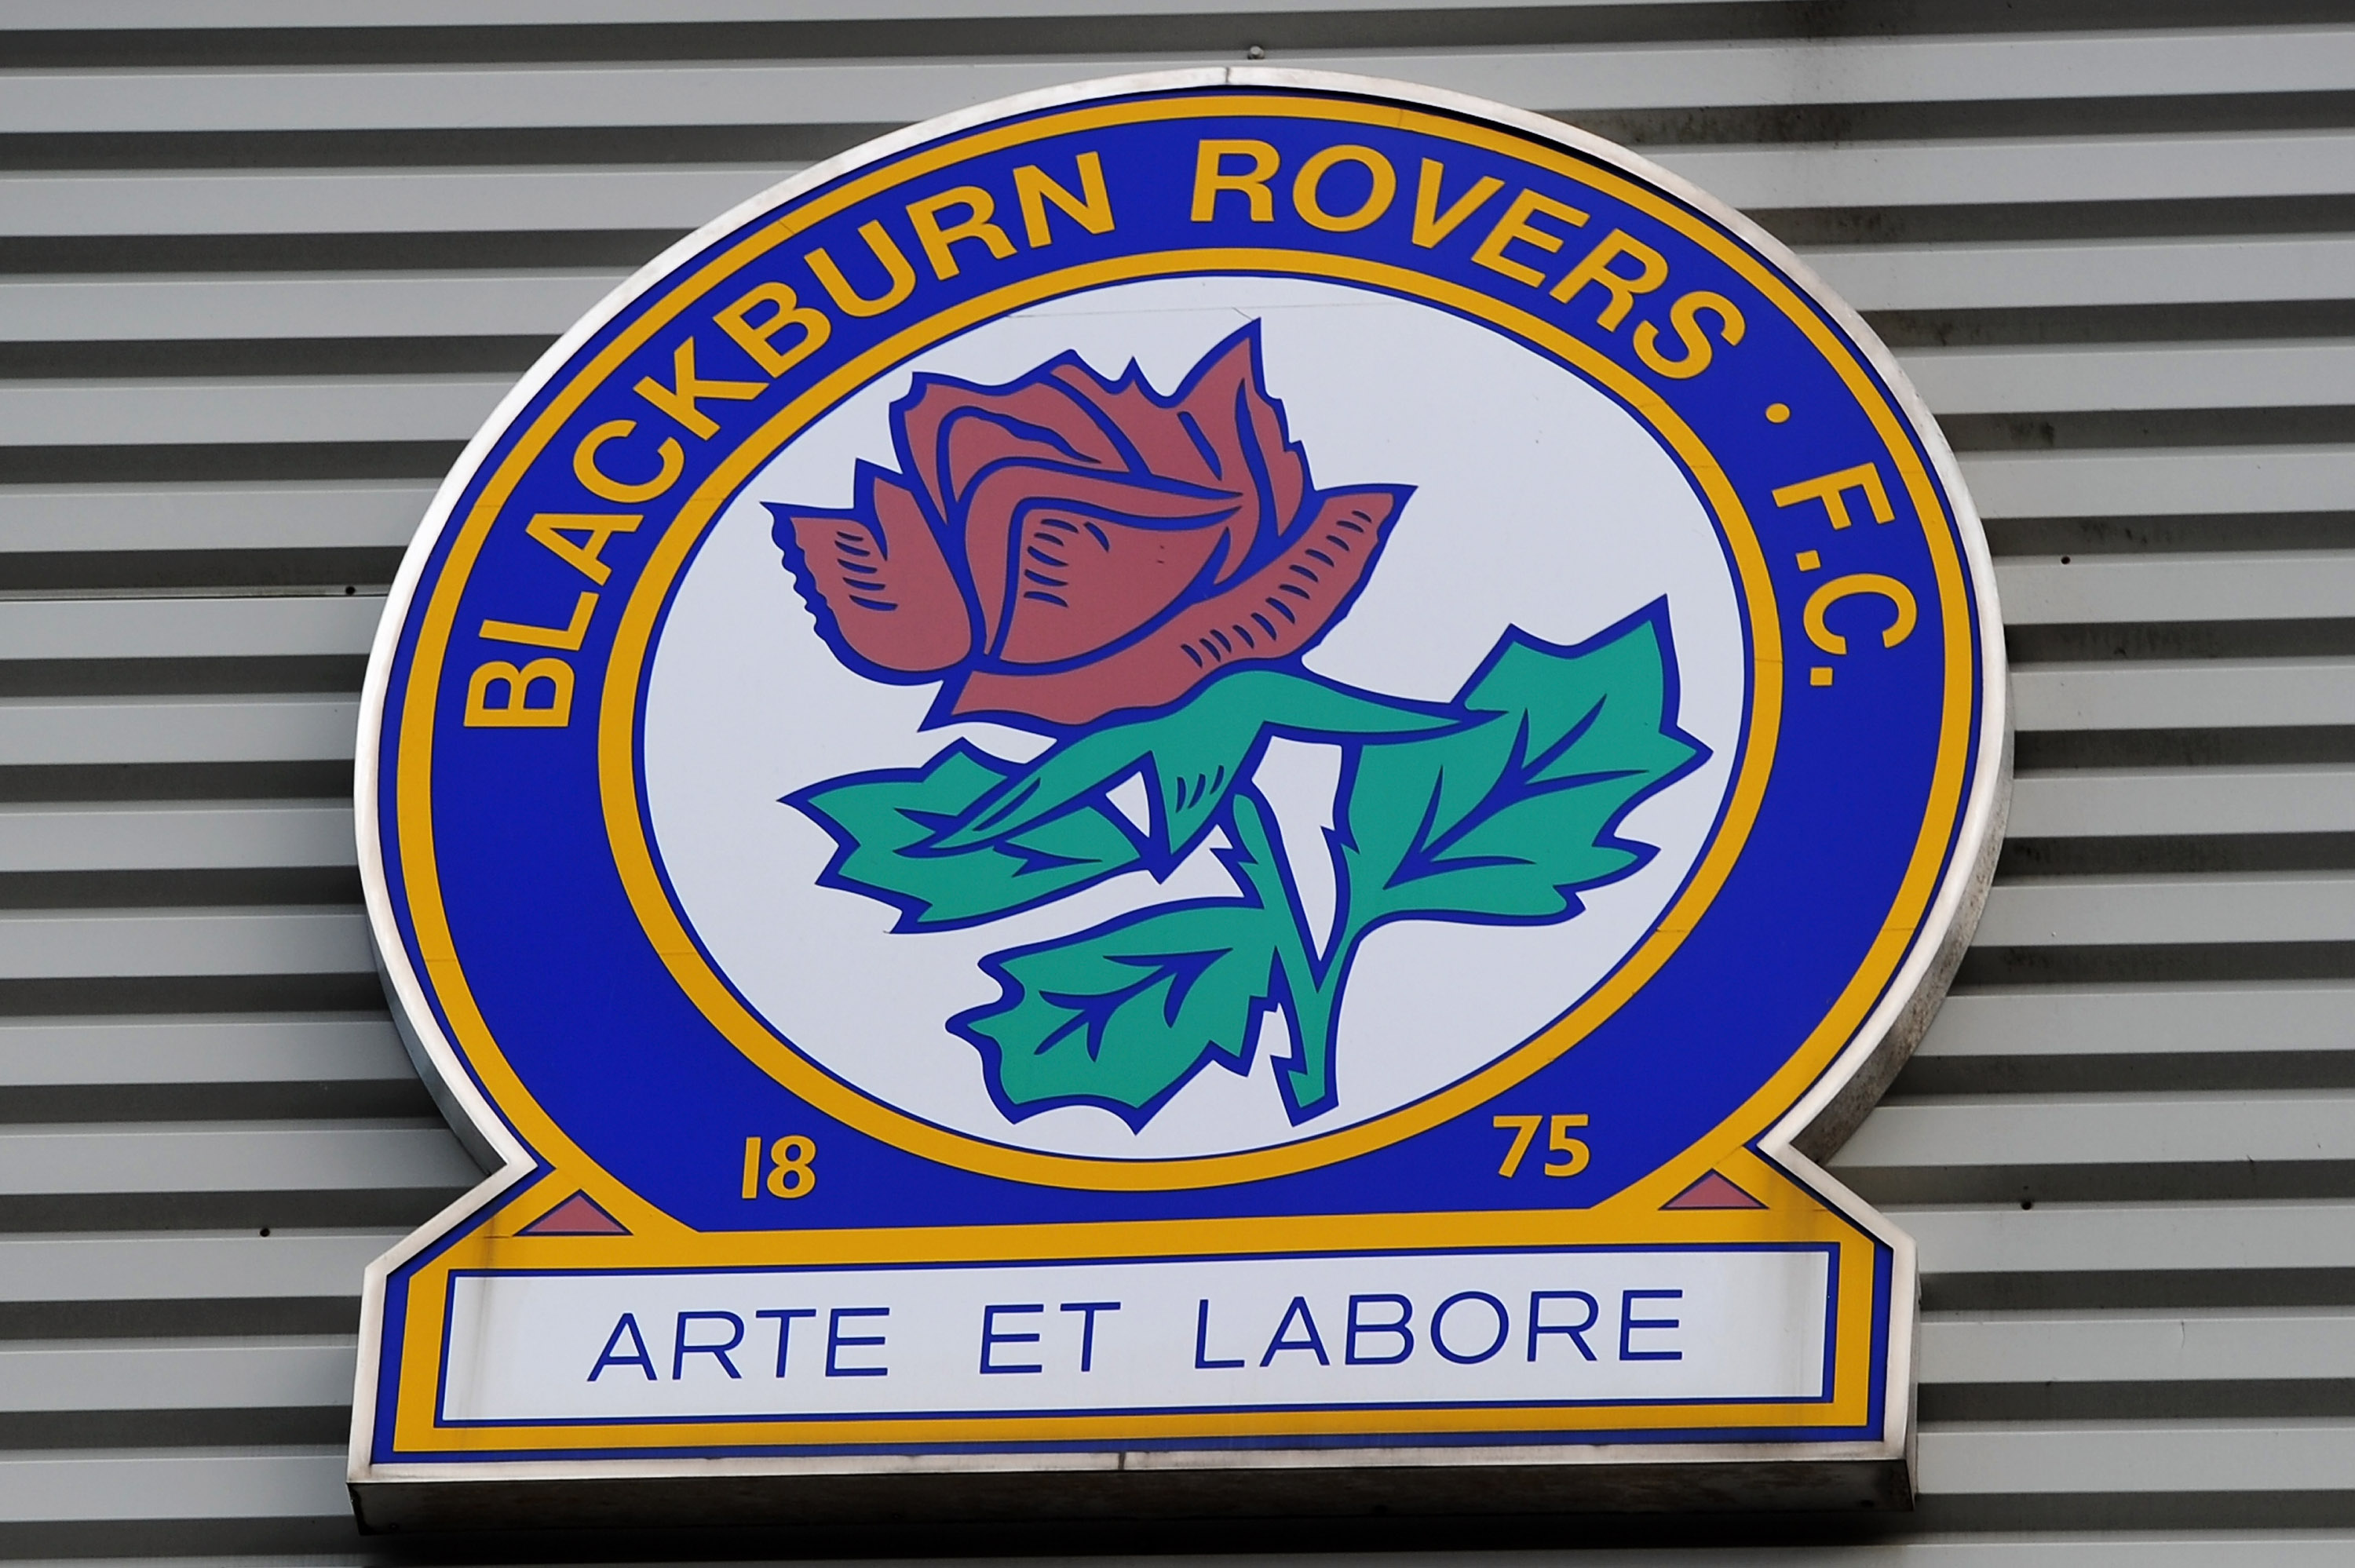 BLACKBURN, ENGLAND - OCTOBER 30:  General view of the Blackburn crest during the Barclays Premier League match between Blackburn Rovers and Chelsea at Ewood Park on October 30, 2010 in Blackburn, England.  (Photo by Mike Hewitt/Getty Images)